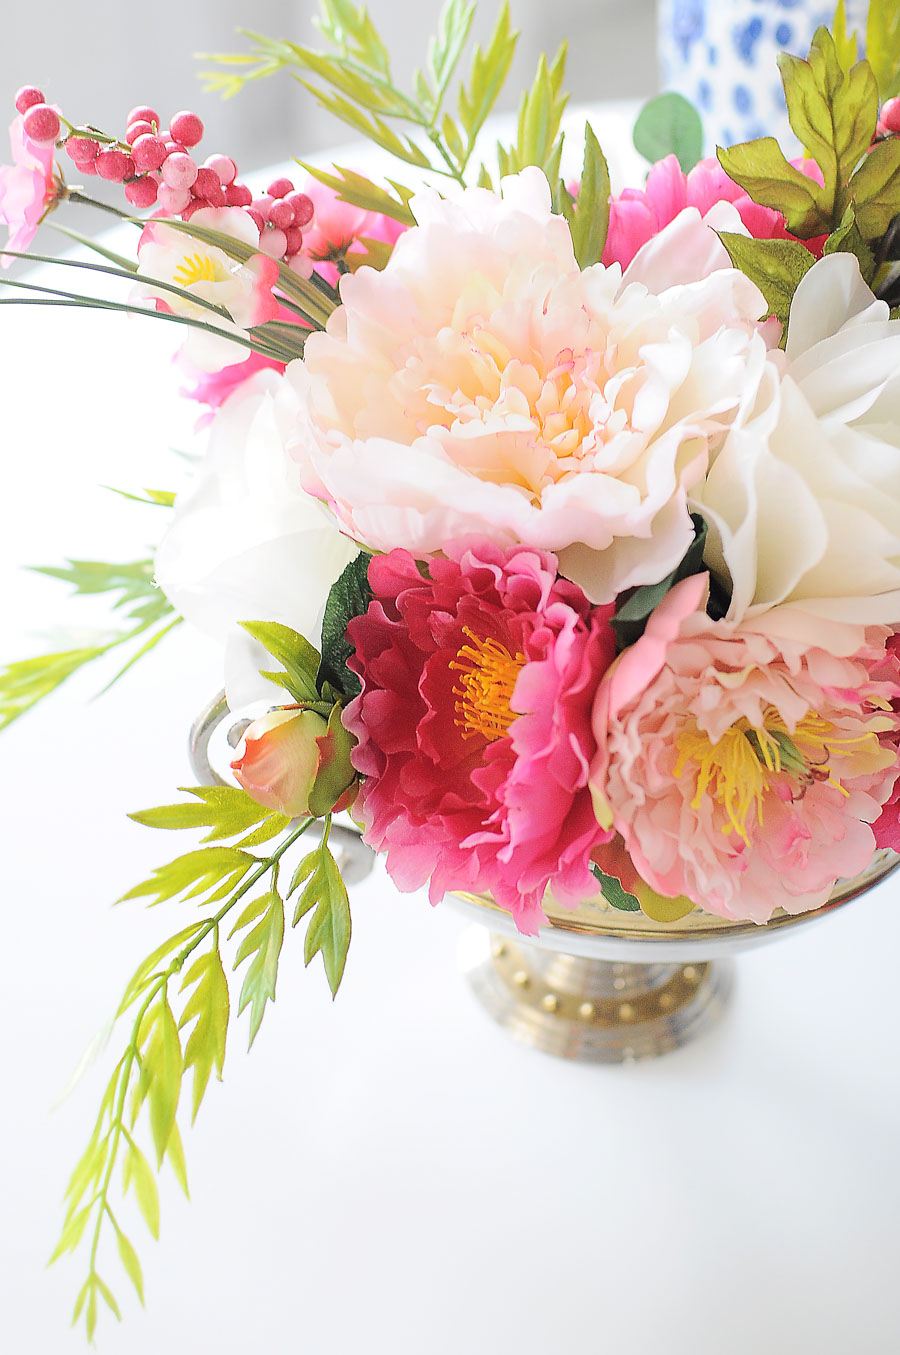 DIY pink and white peony faux floral arrangement tutorial using a trophy vase and dry floral foam. Love this idea for spring home decor or a centerpiece.